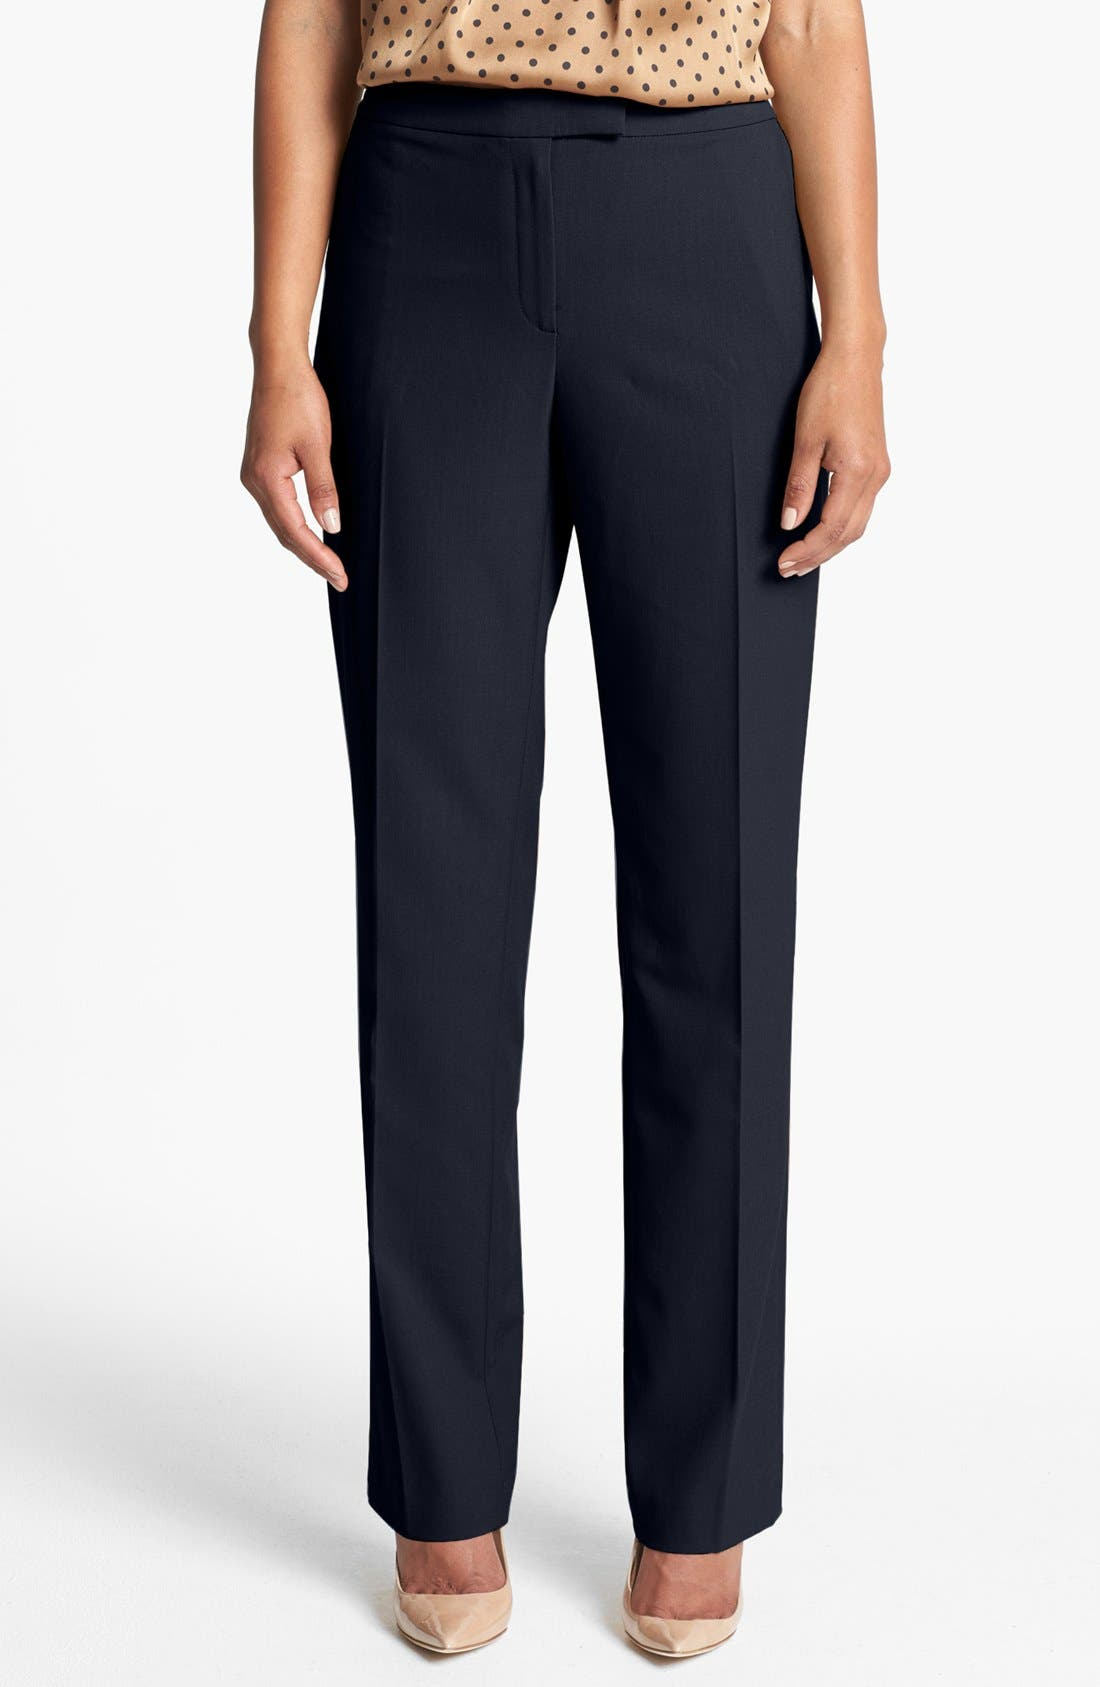 Main Image - Jones New York 'Sydney' Pants (Regular & Petite)